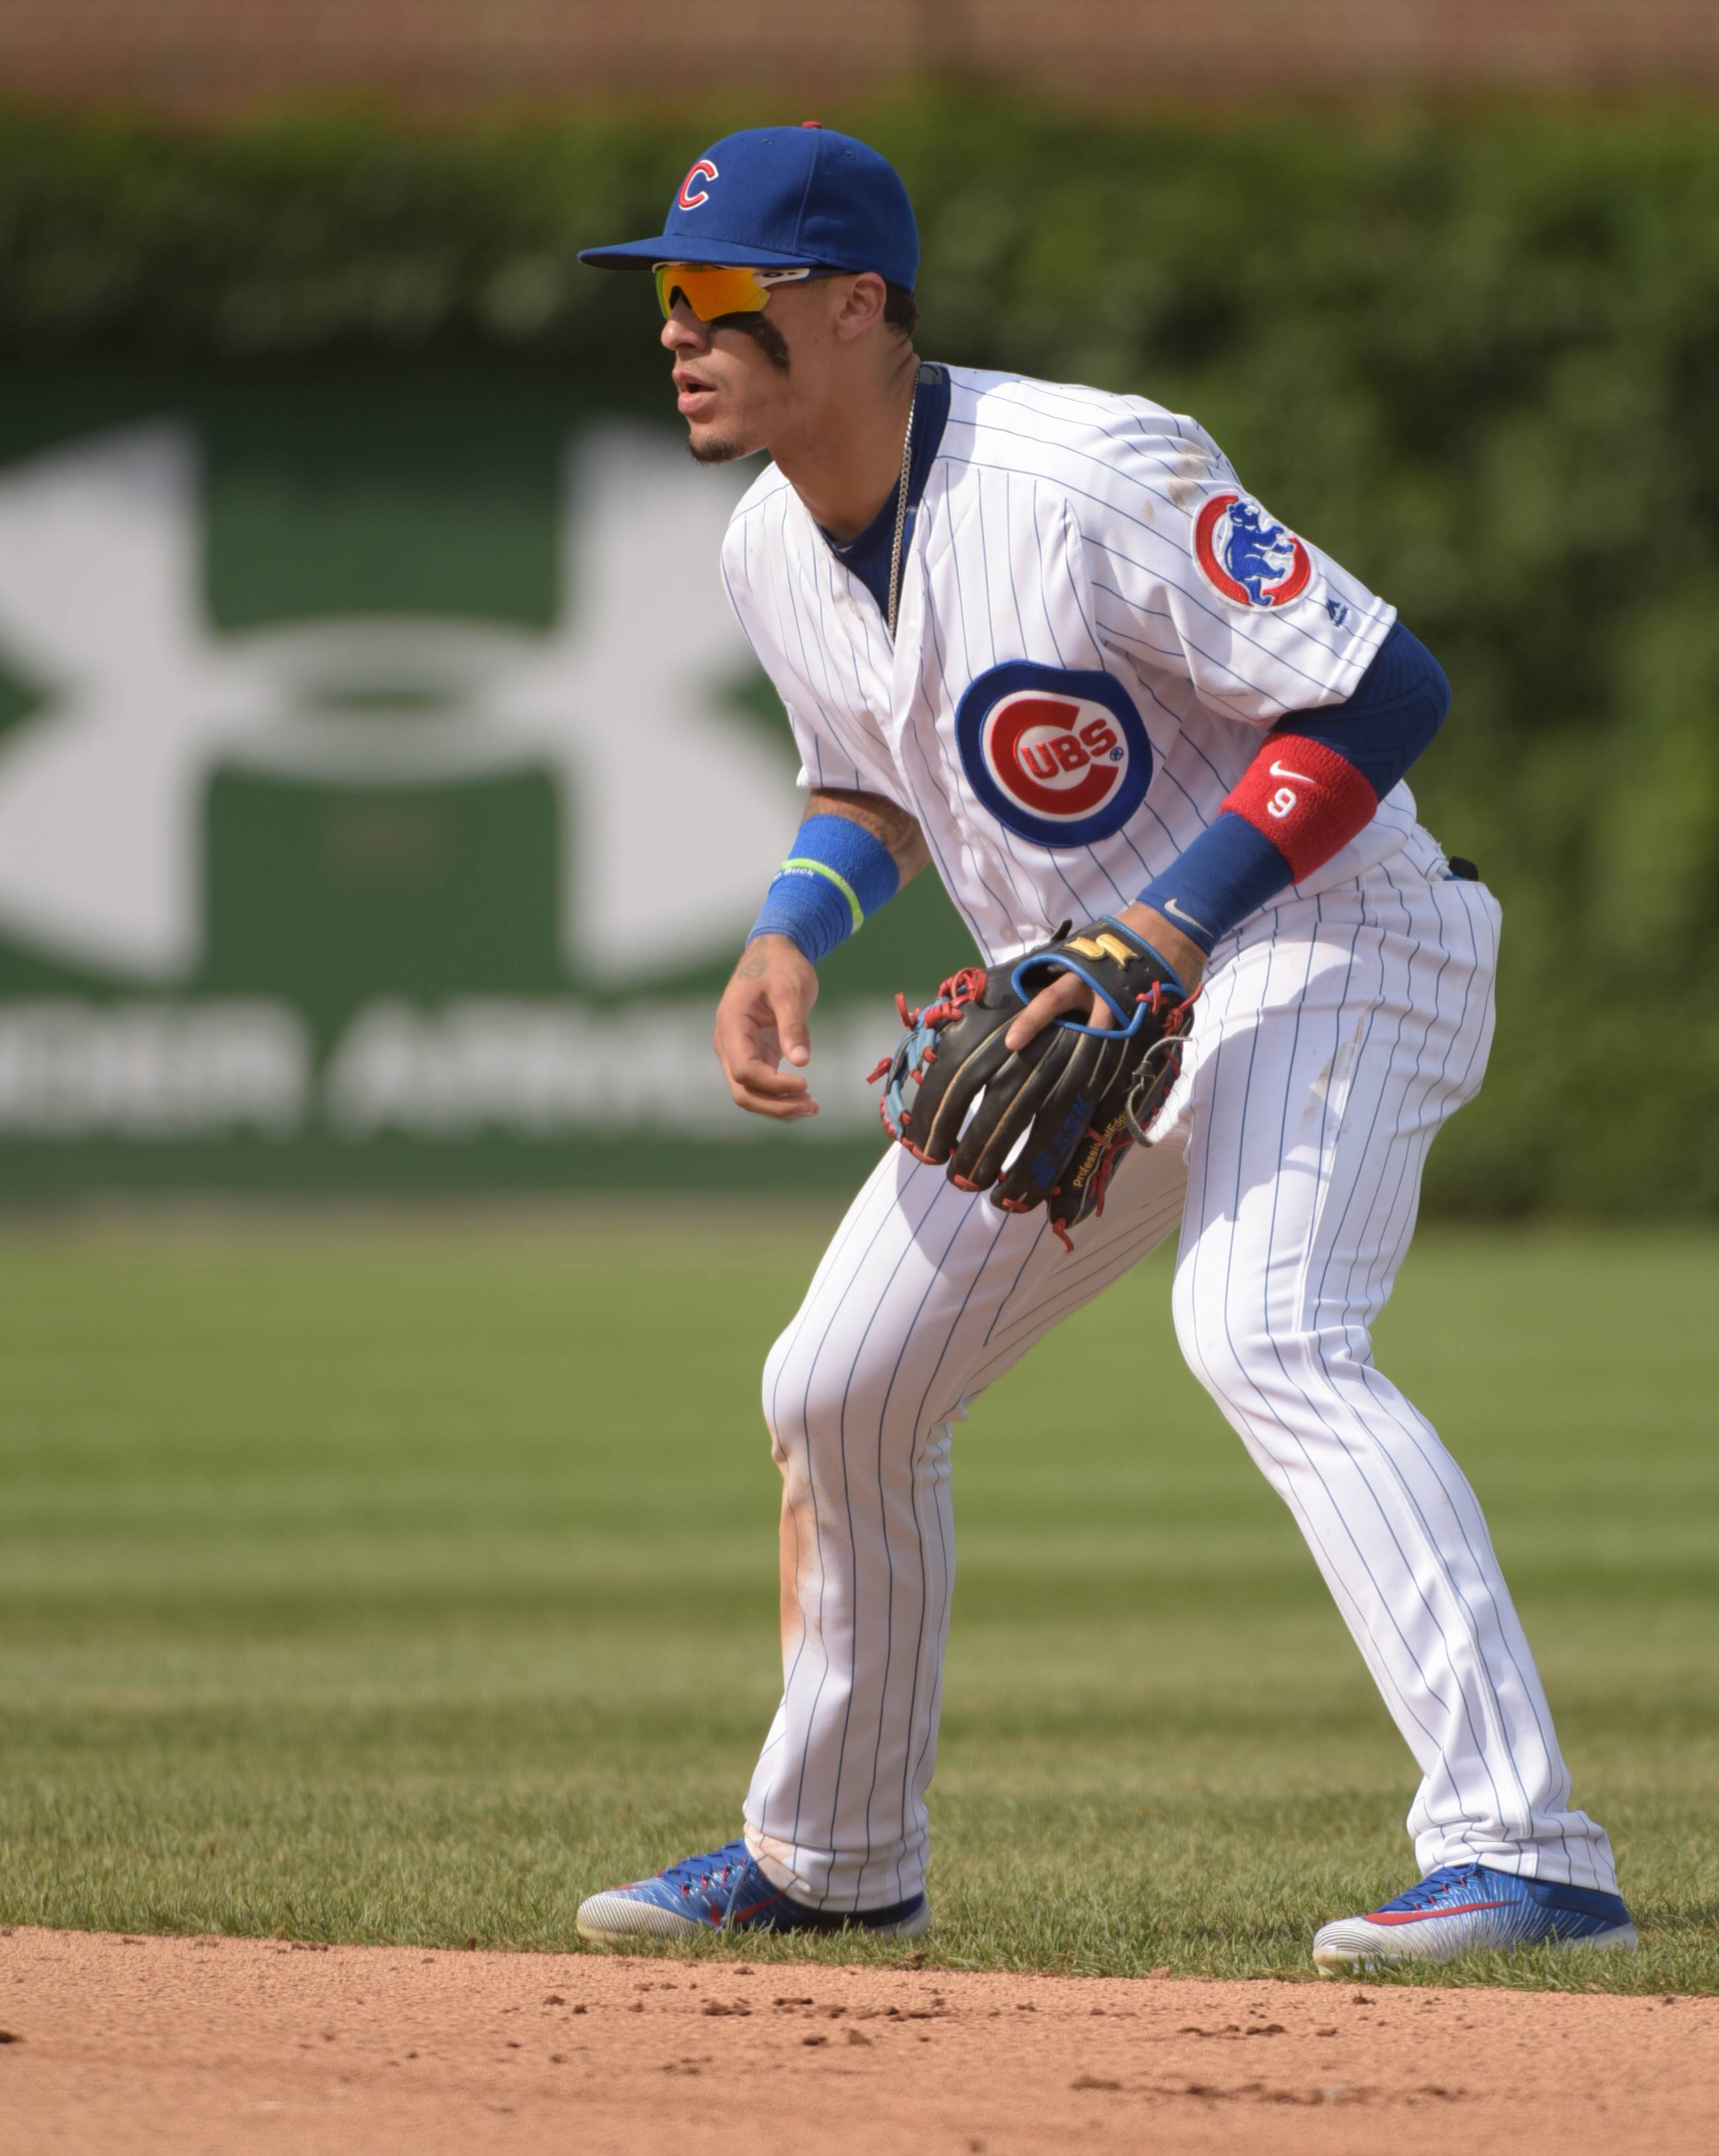 The versatility of the Chicago Cubs' Javier Baez allows manager Joe Maddon to rest the team's regulars more often. Baez is able to plug into whatever position needed without the team suffering defensively.